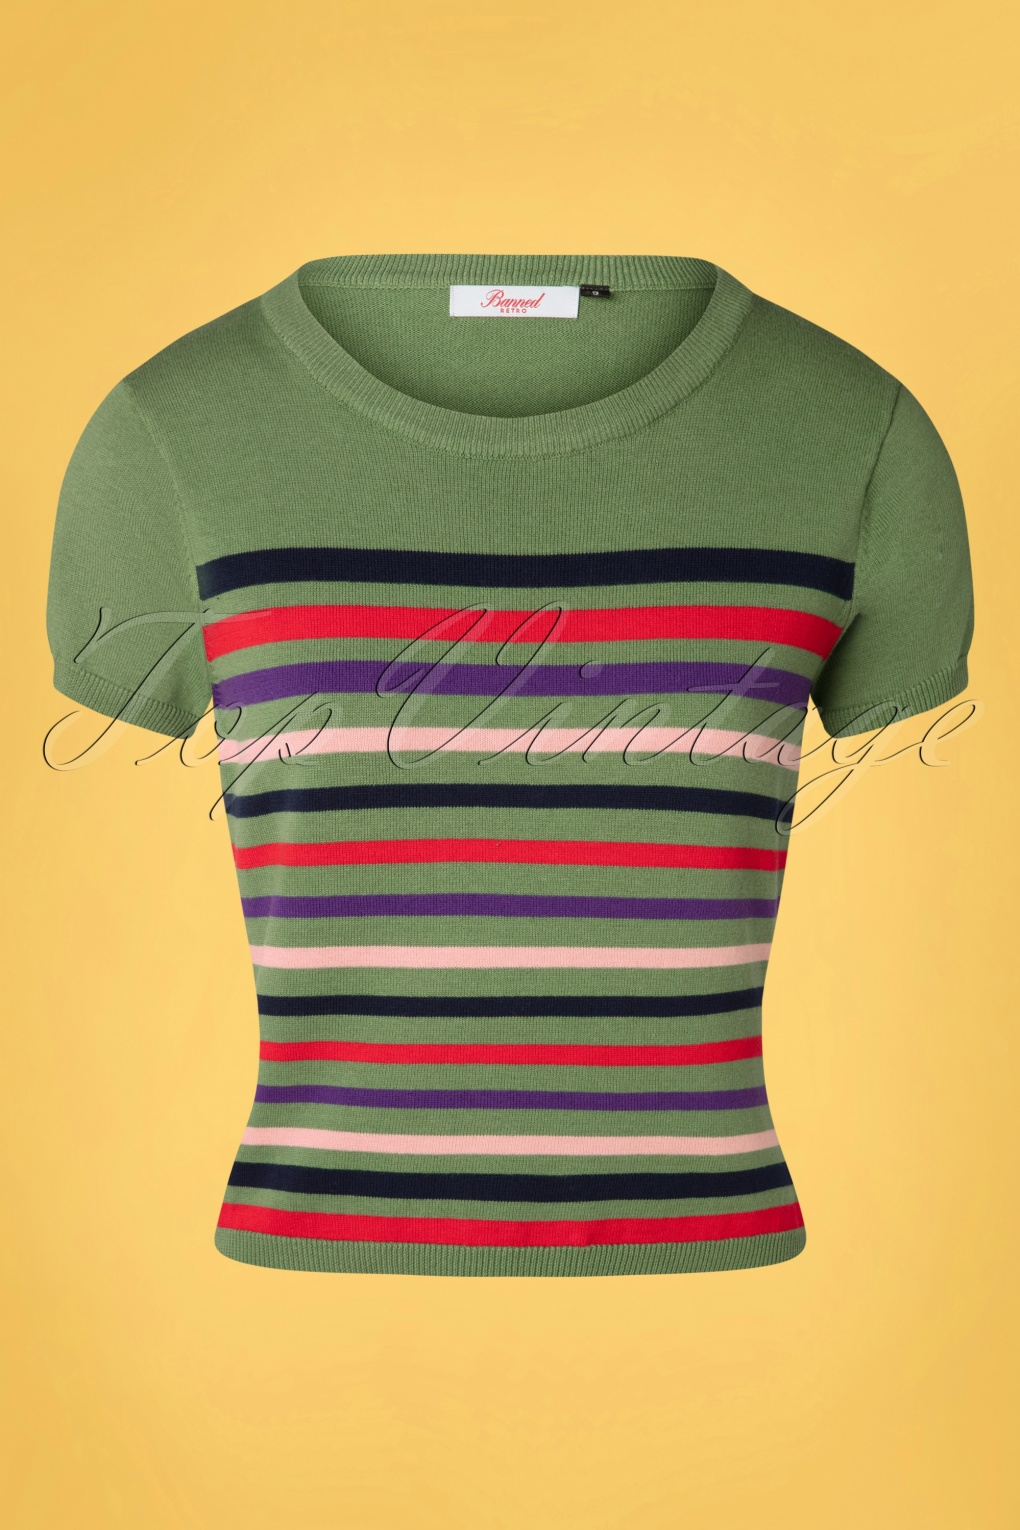 Shop Queen's Gambit Outfits – 60s Clothes 60s Memory Lane Stripes Top in Green £29.36 AT vintagedancer.com